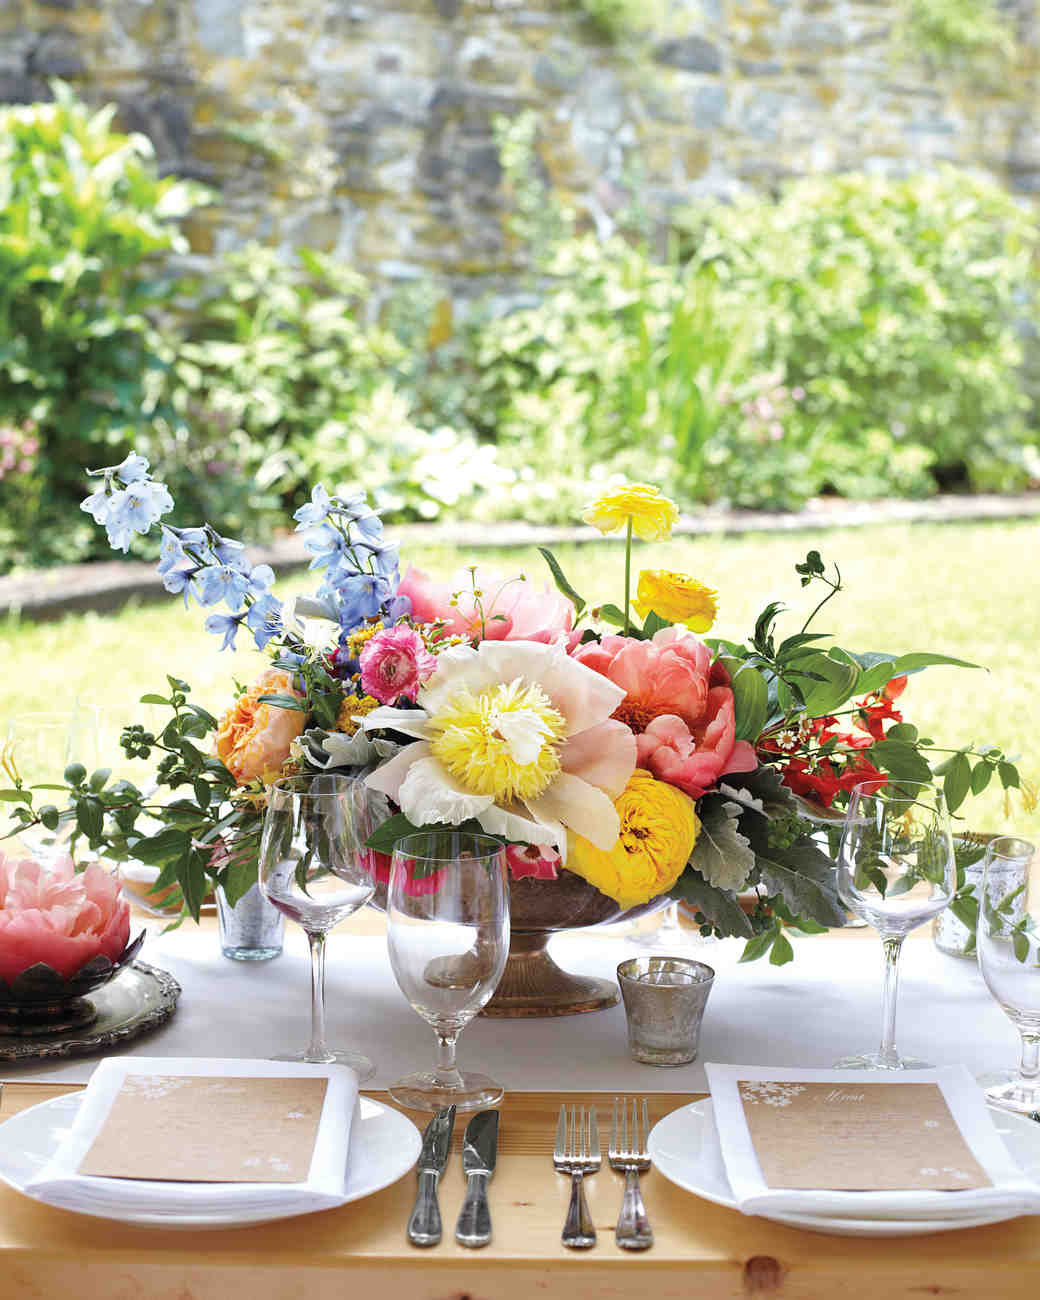 Wedding Centerpieces: Floral Wedding Centerpieces